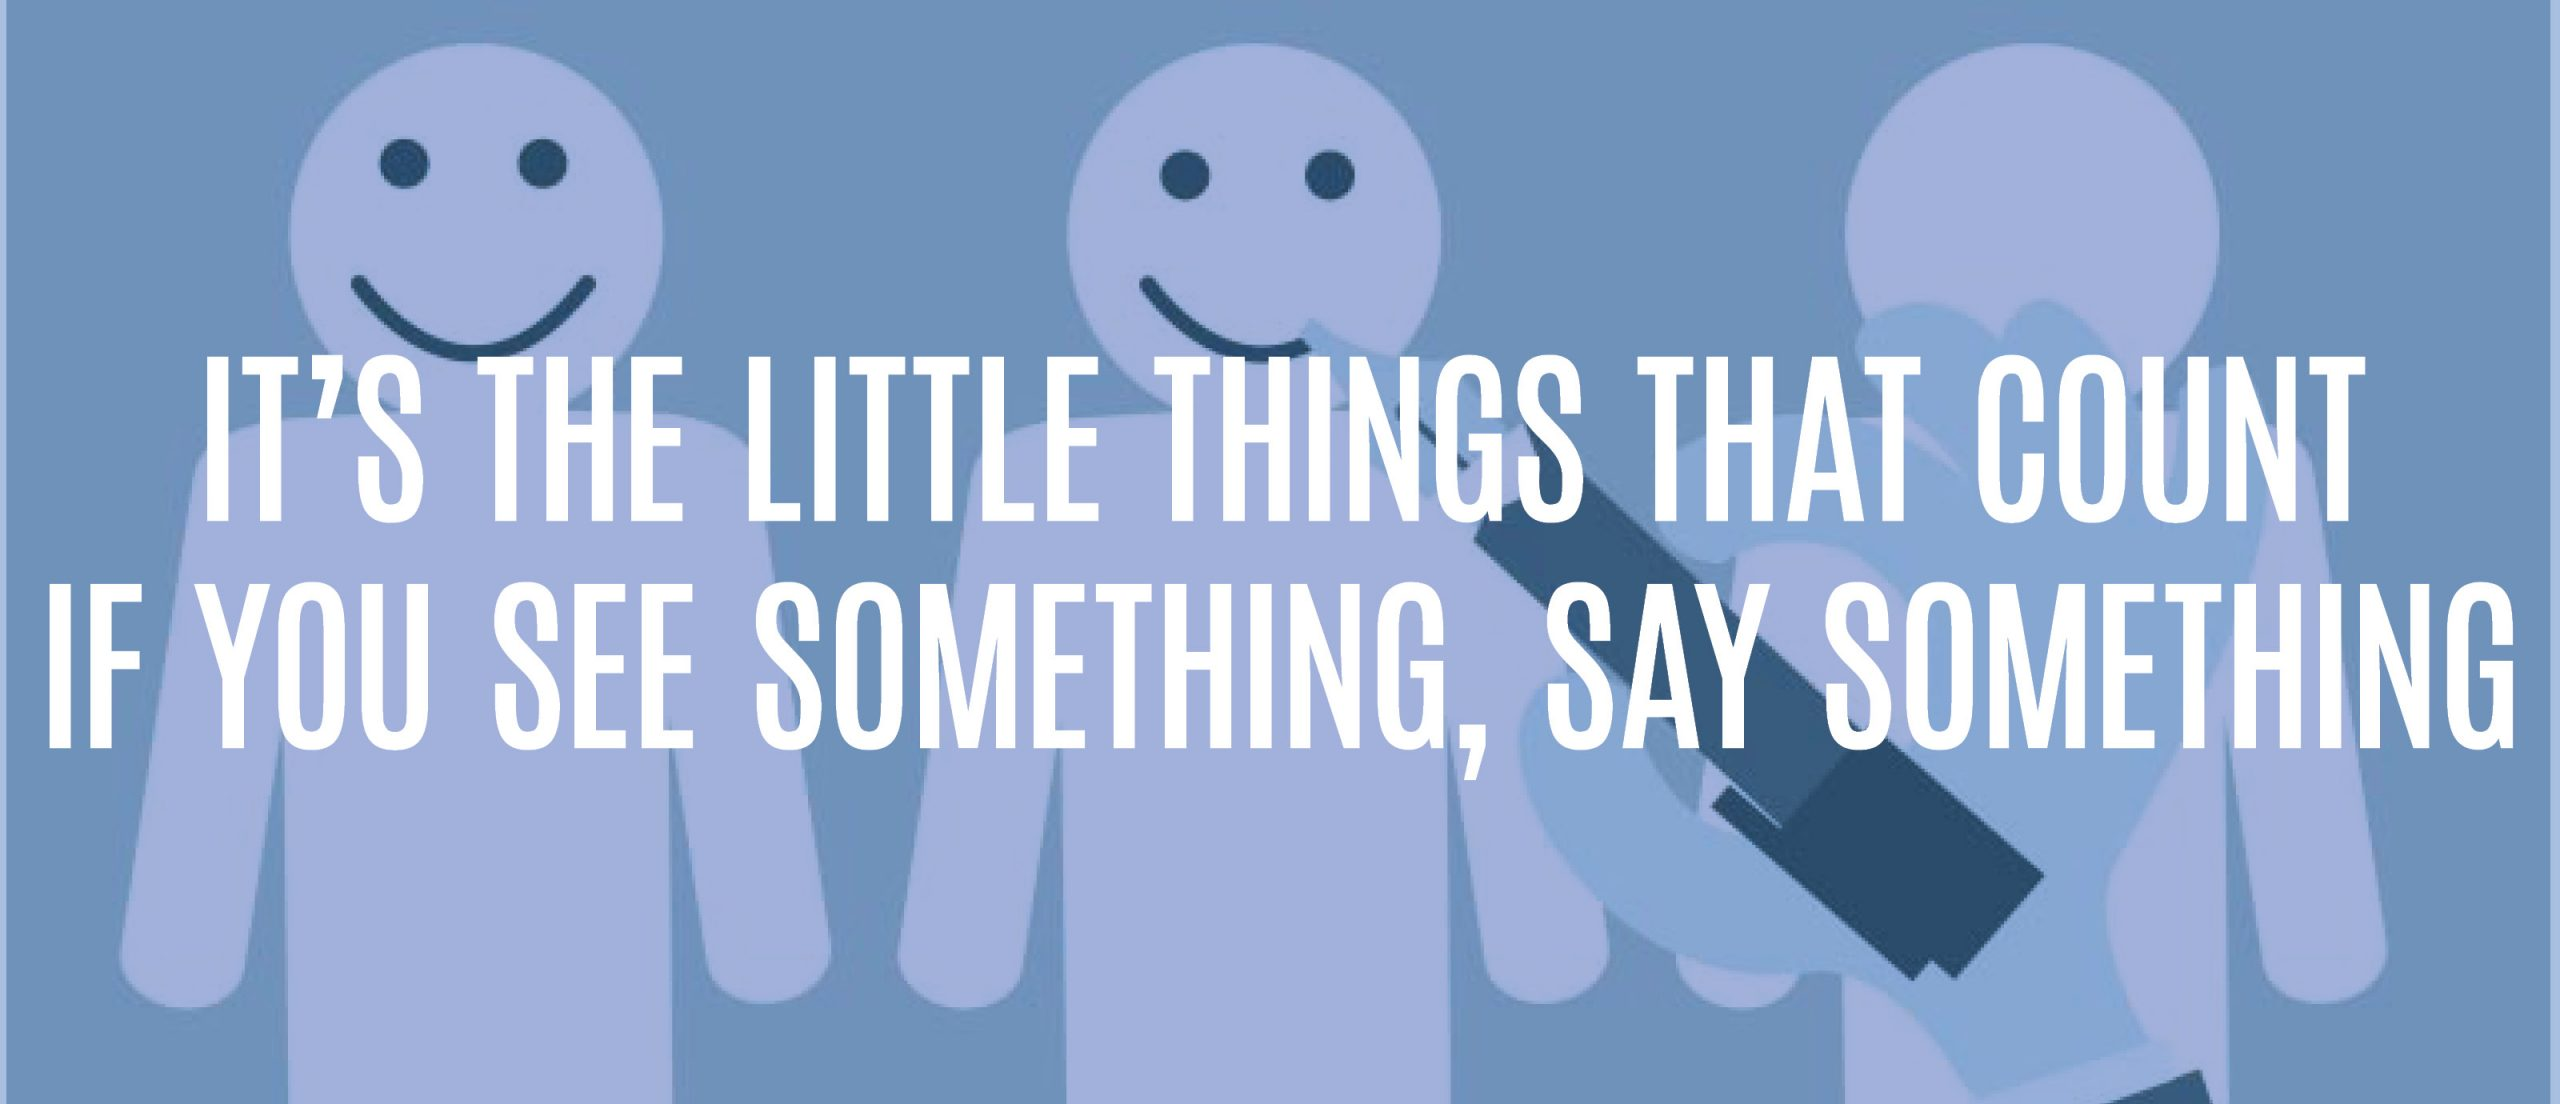 Blog title - it's the little things that count. If you see something, say something.